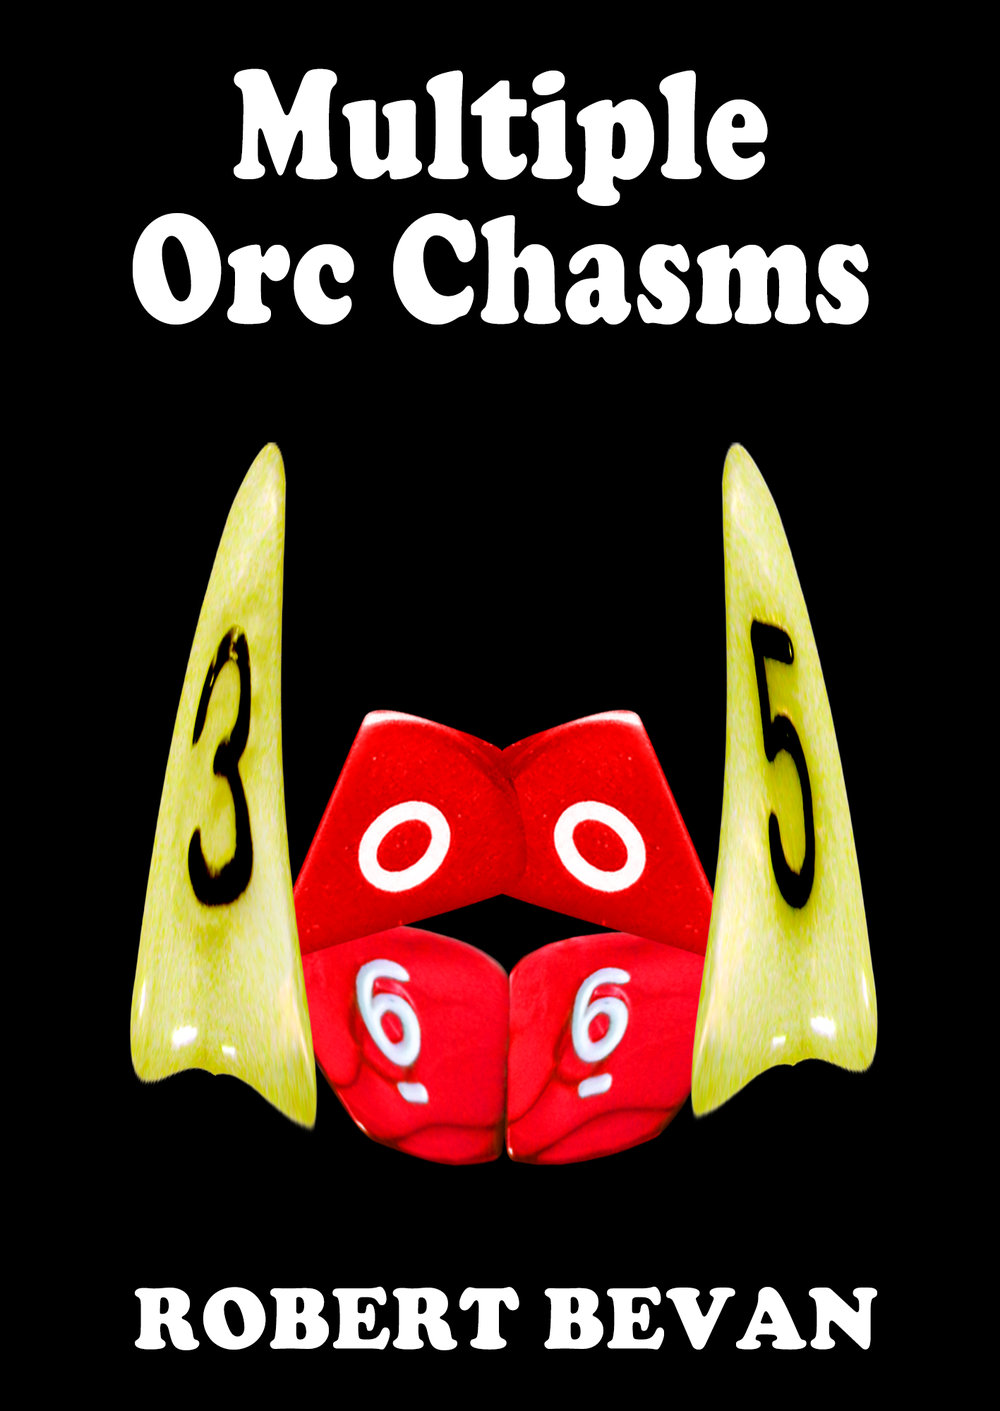 Get Multiple Orc Chasms for FREE when you  sign up for my mailing list !